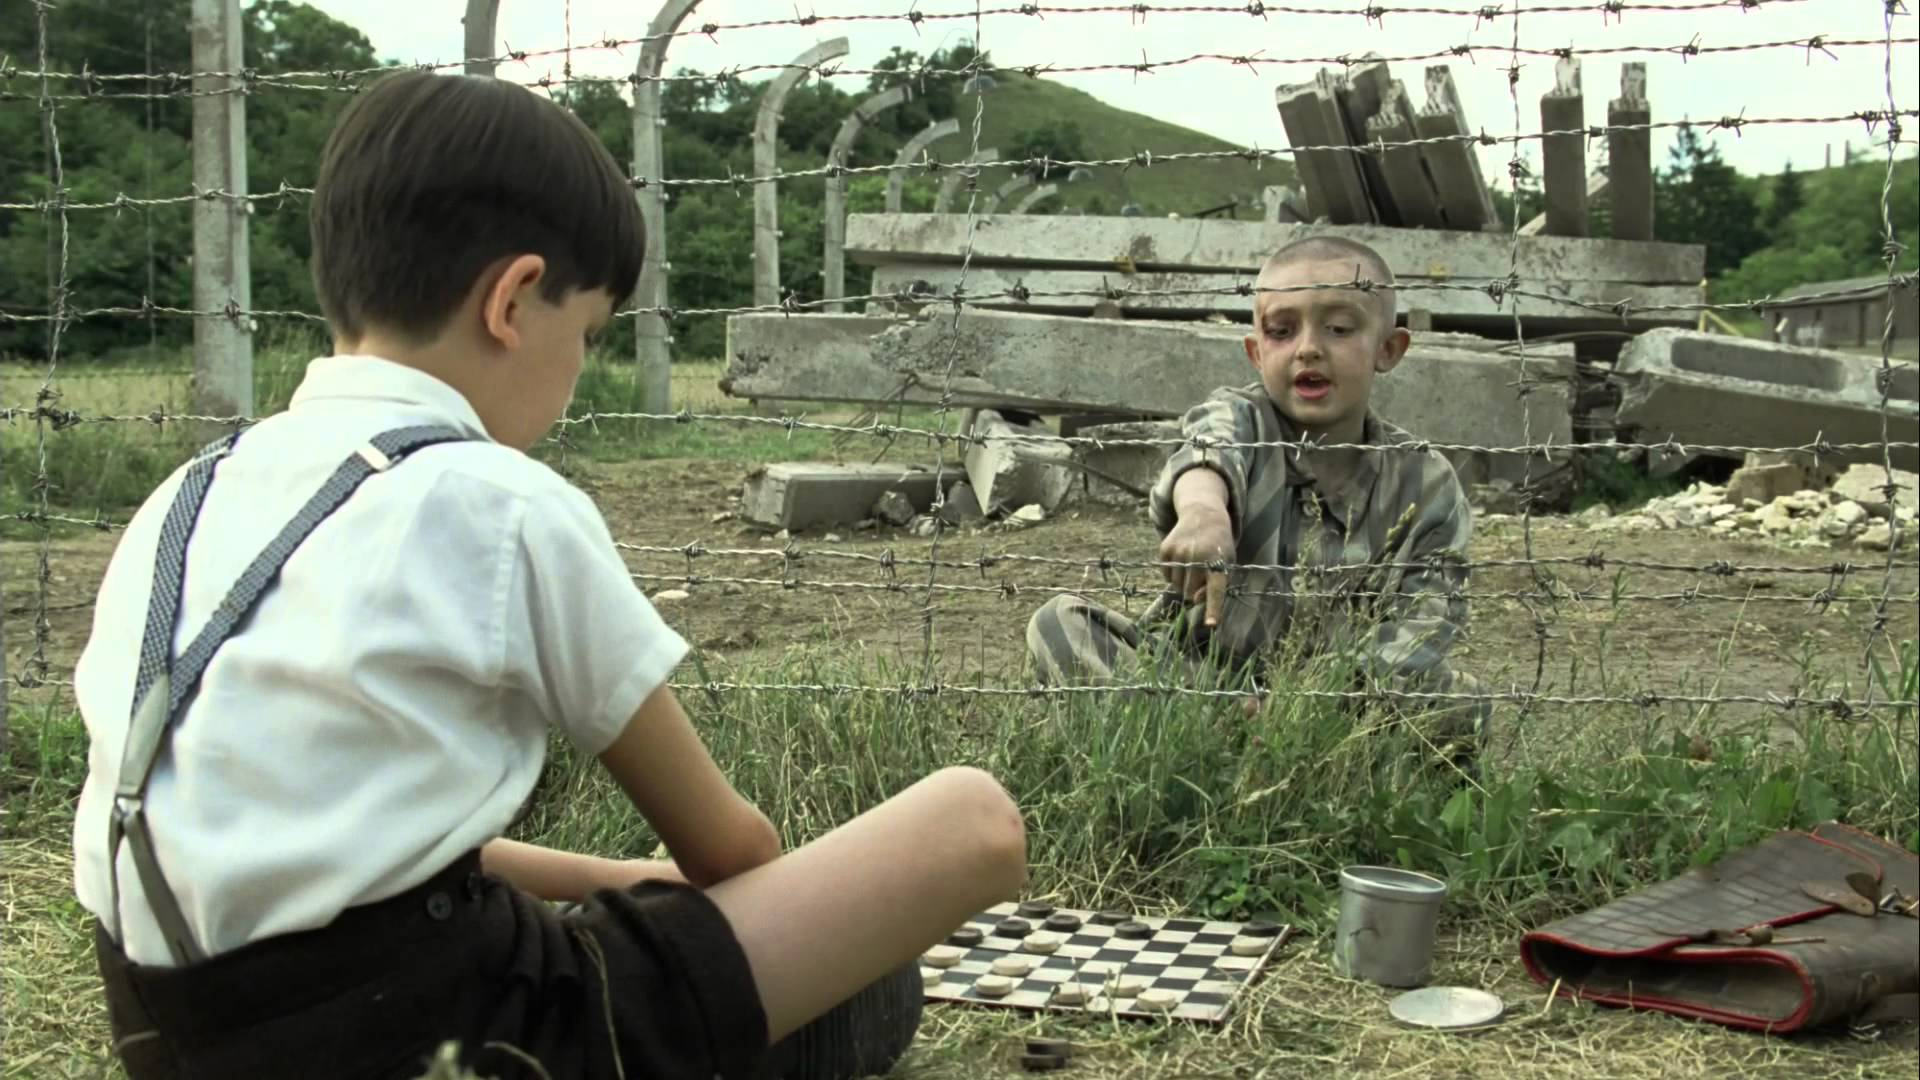 «The Boy in the Striped Pyjamas» (2008)